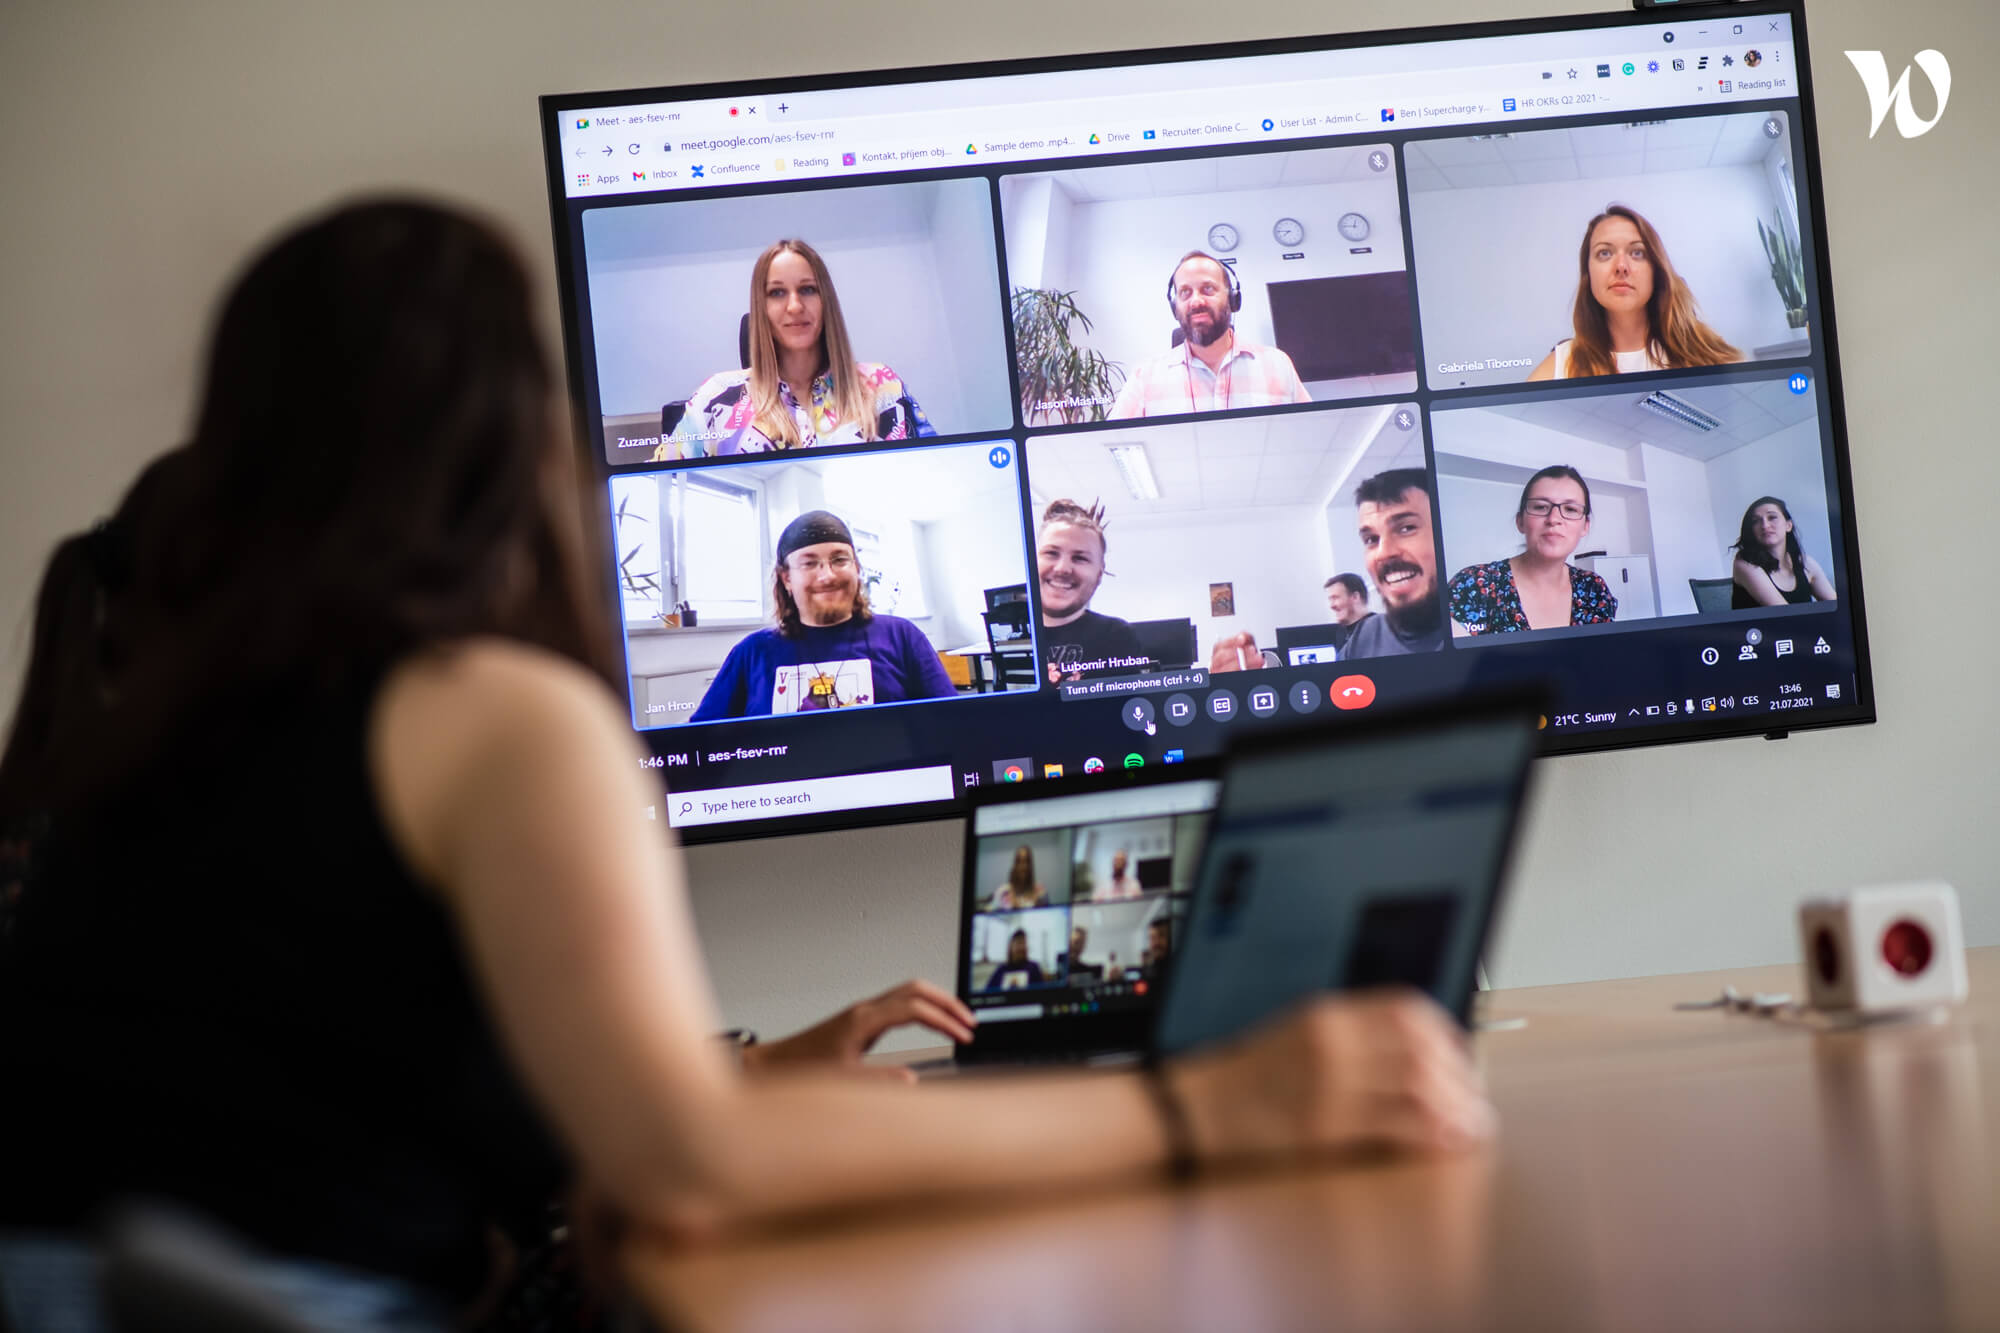 A photo of the Runecast team in a video call meeting.